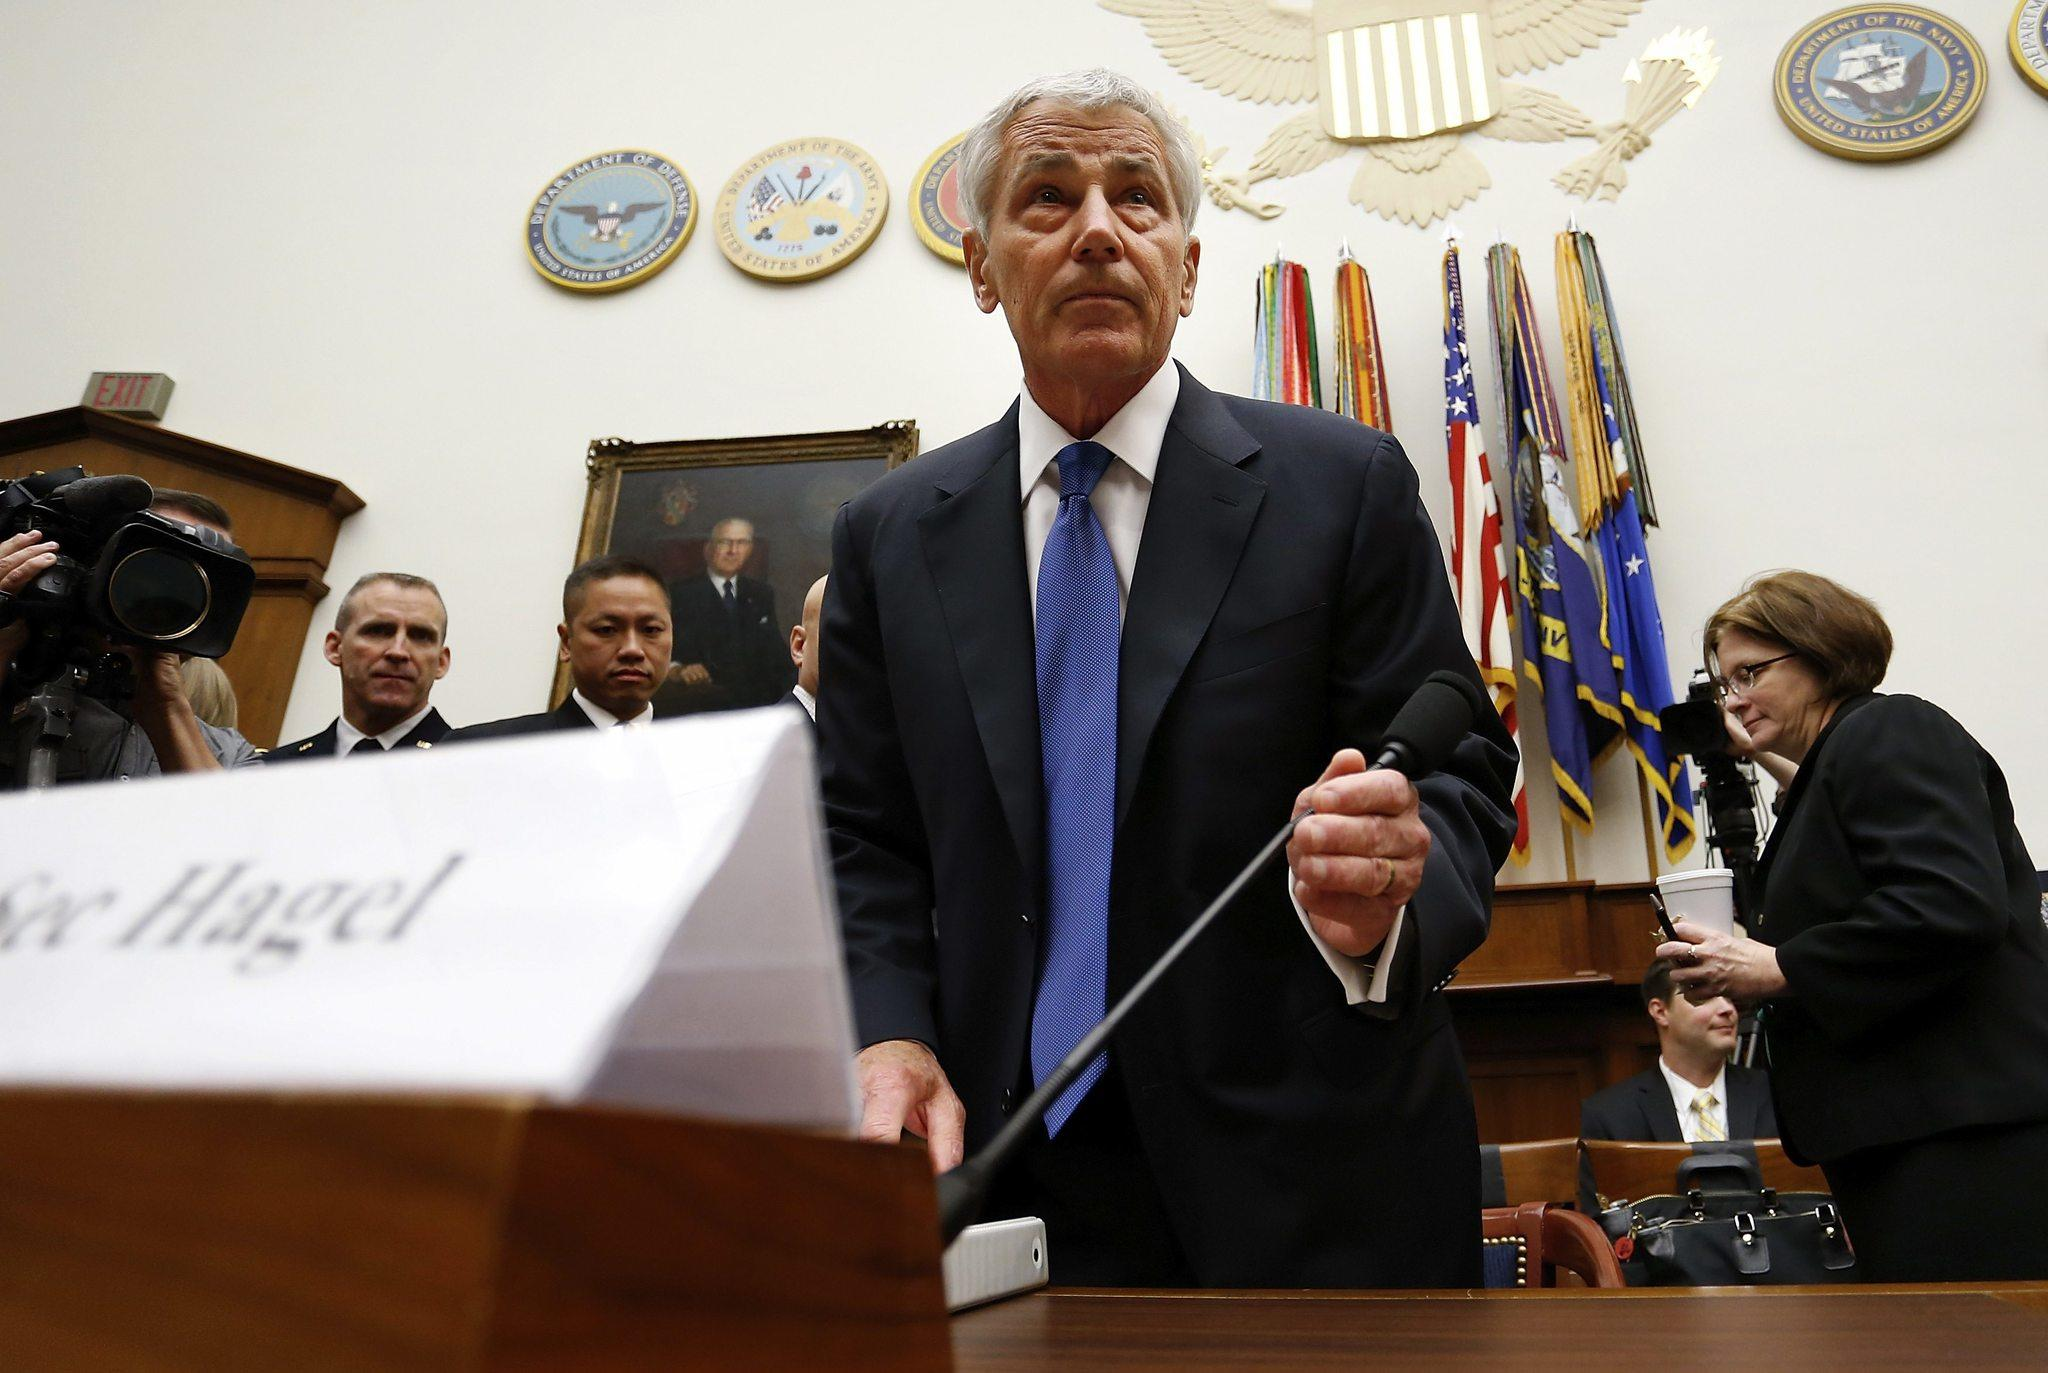 U.S. Defense Secretary Chuck Hagel takes his seat to testify about the Bergdahl prisoner exchange, at a House Armed Services Committee hearing on Capitol Hill in Washington June 11, 2014.